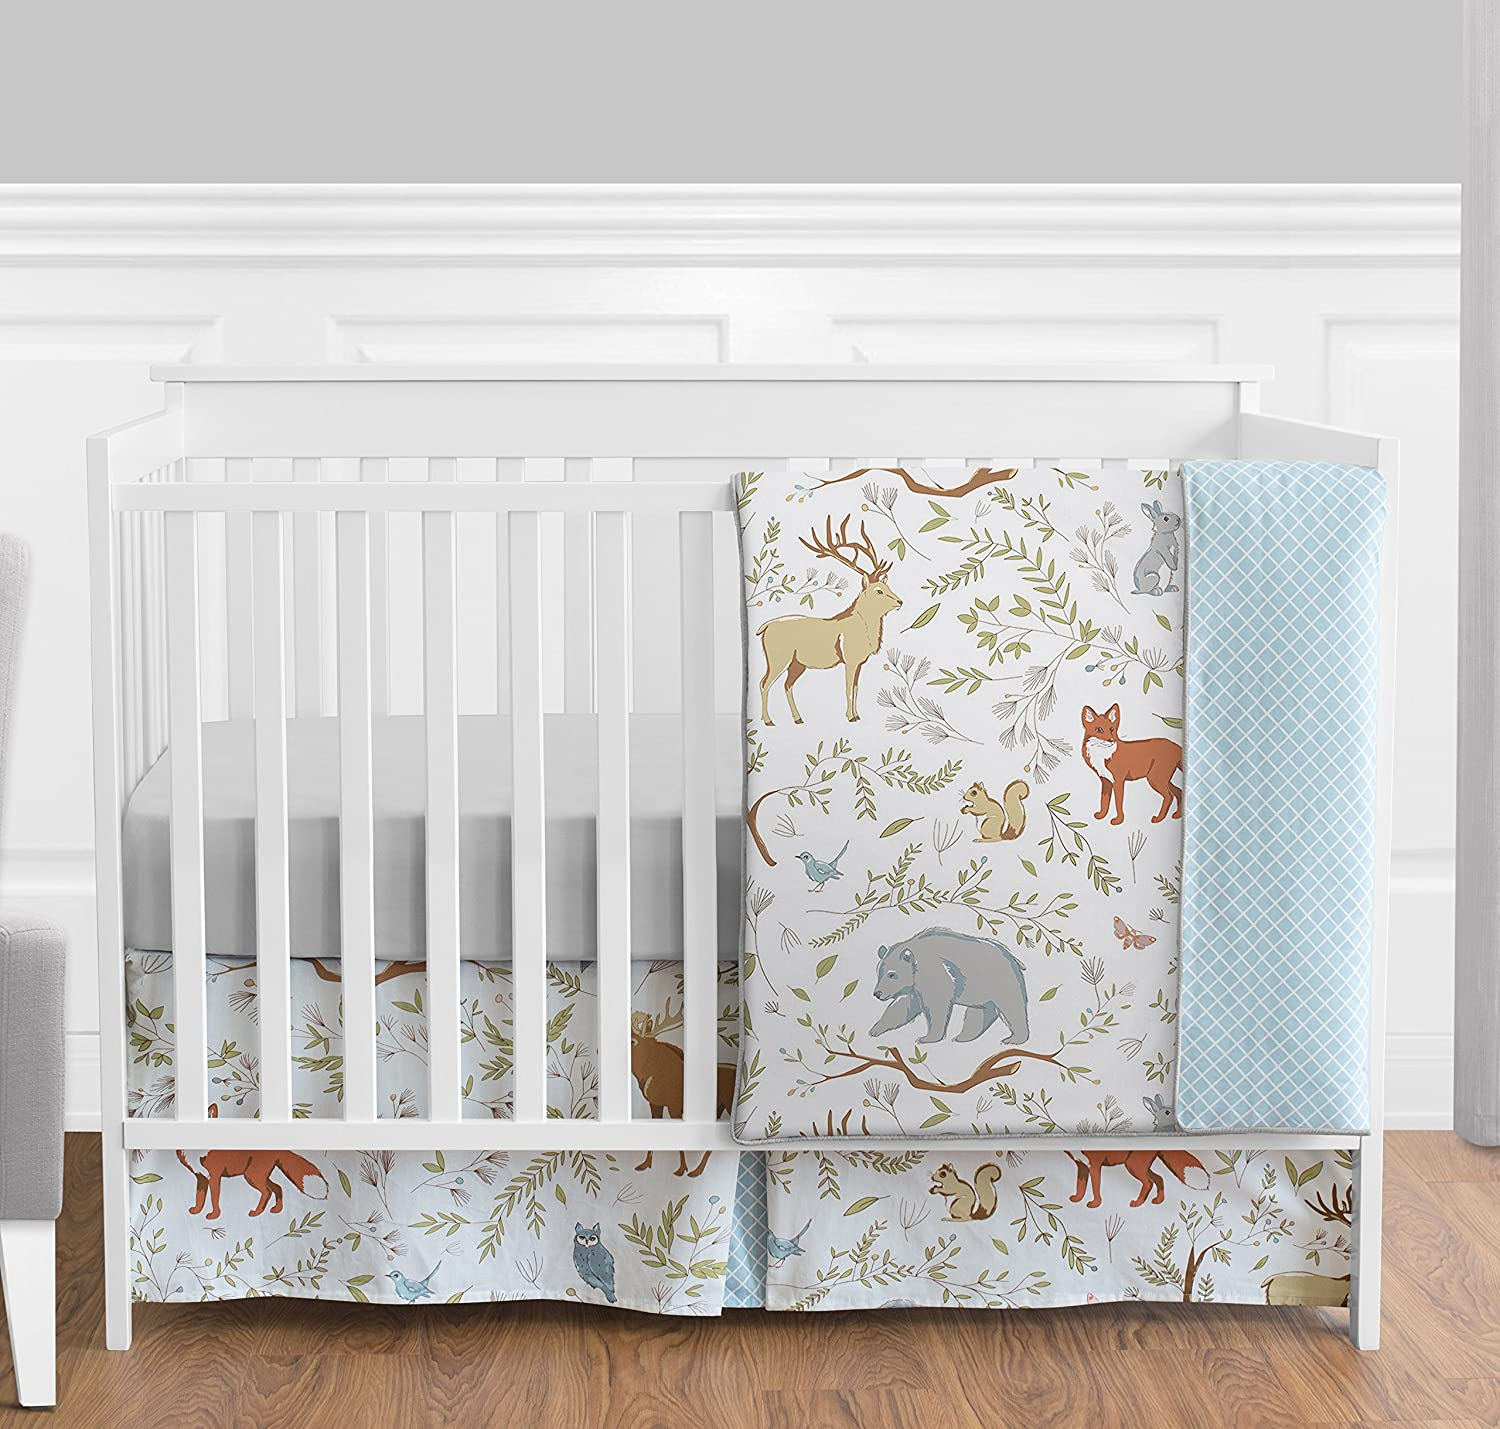 Blue, Grey and White Woodland Deer Fox Bear Animal Toile Girl or Boy Baby Bedding 4 Piece Crib Set Without Bumper Sweet Jojo Designs